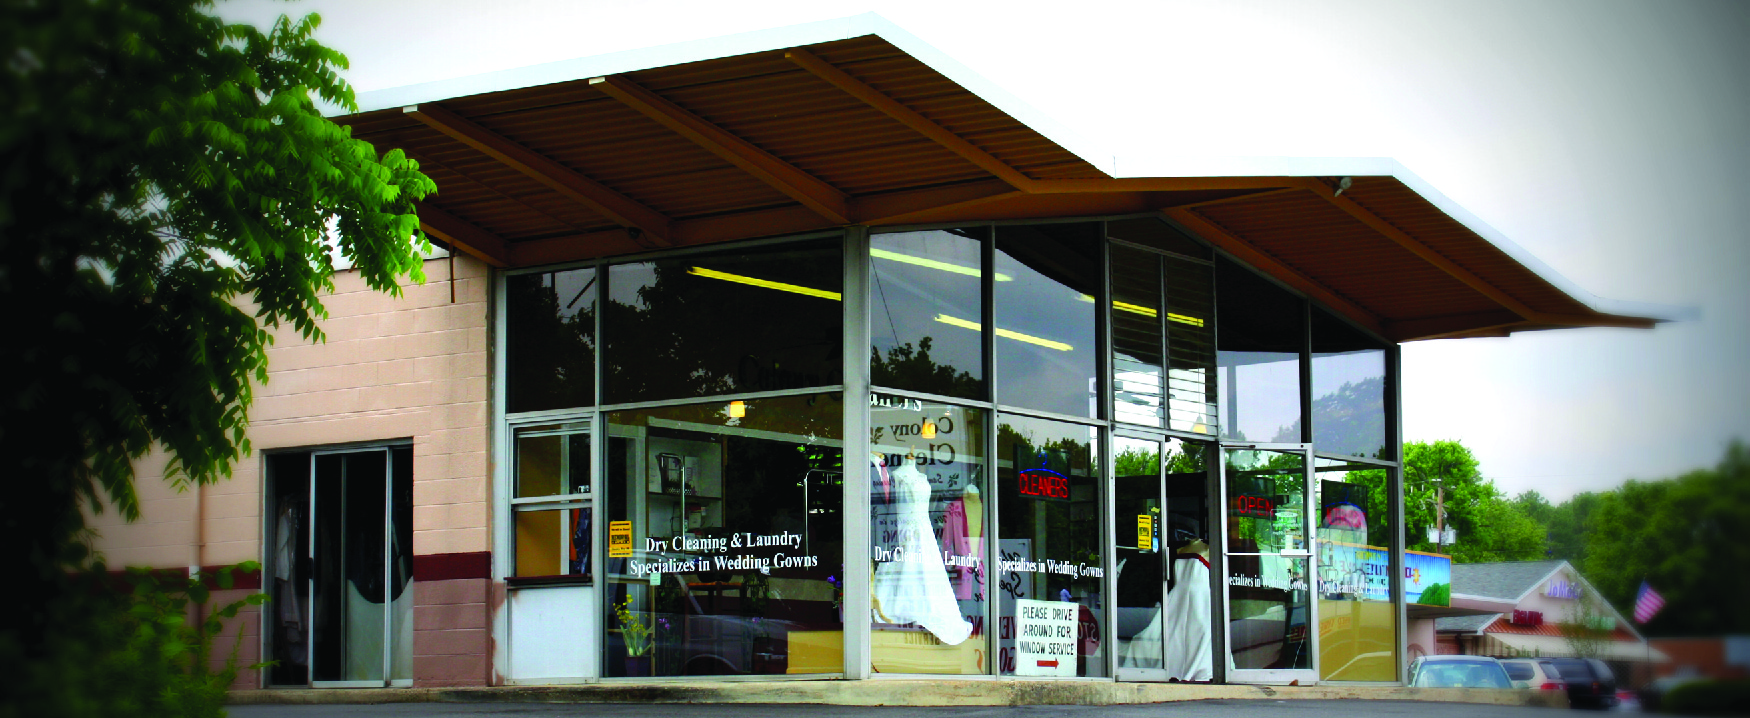 Exterior photograph of dry-cleaning business.